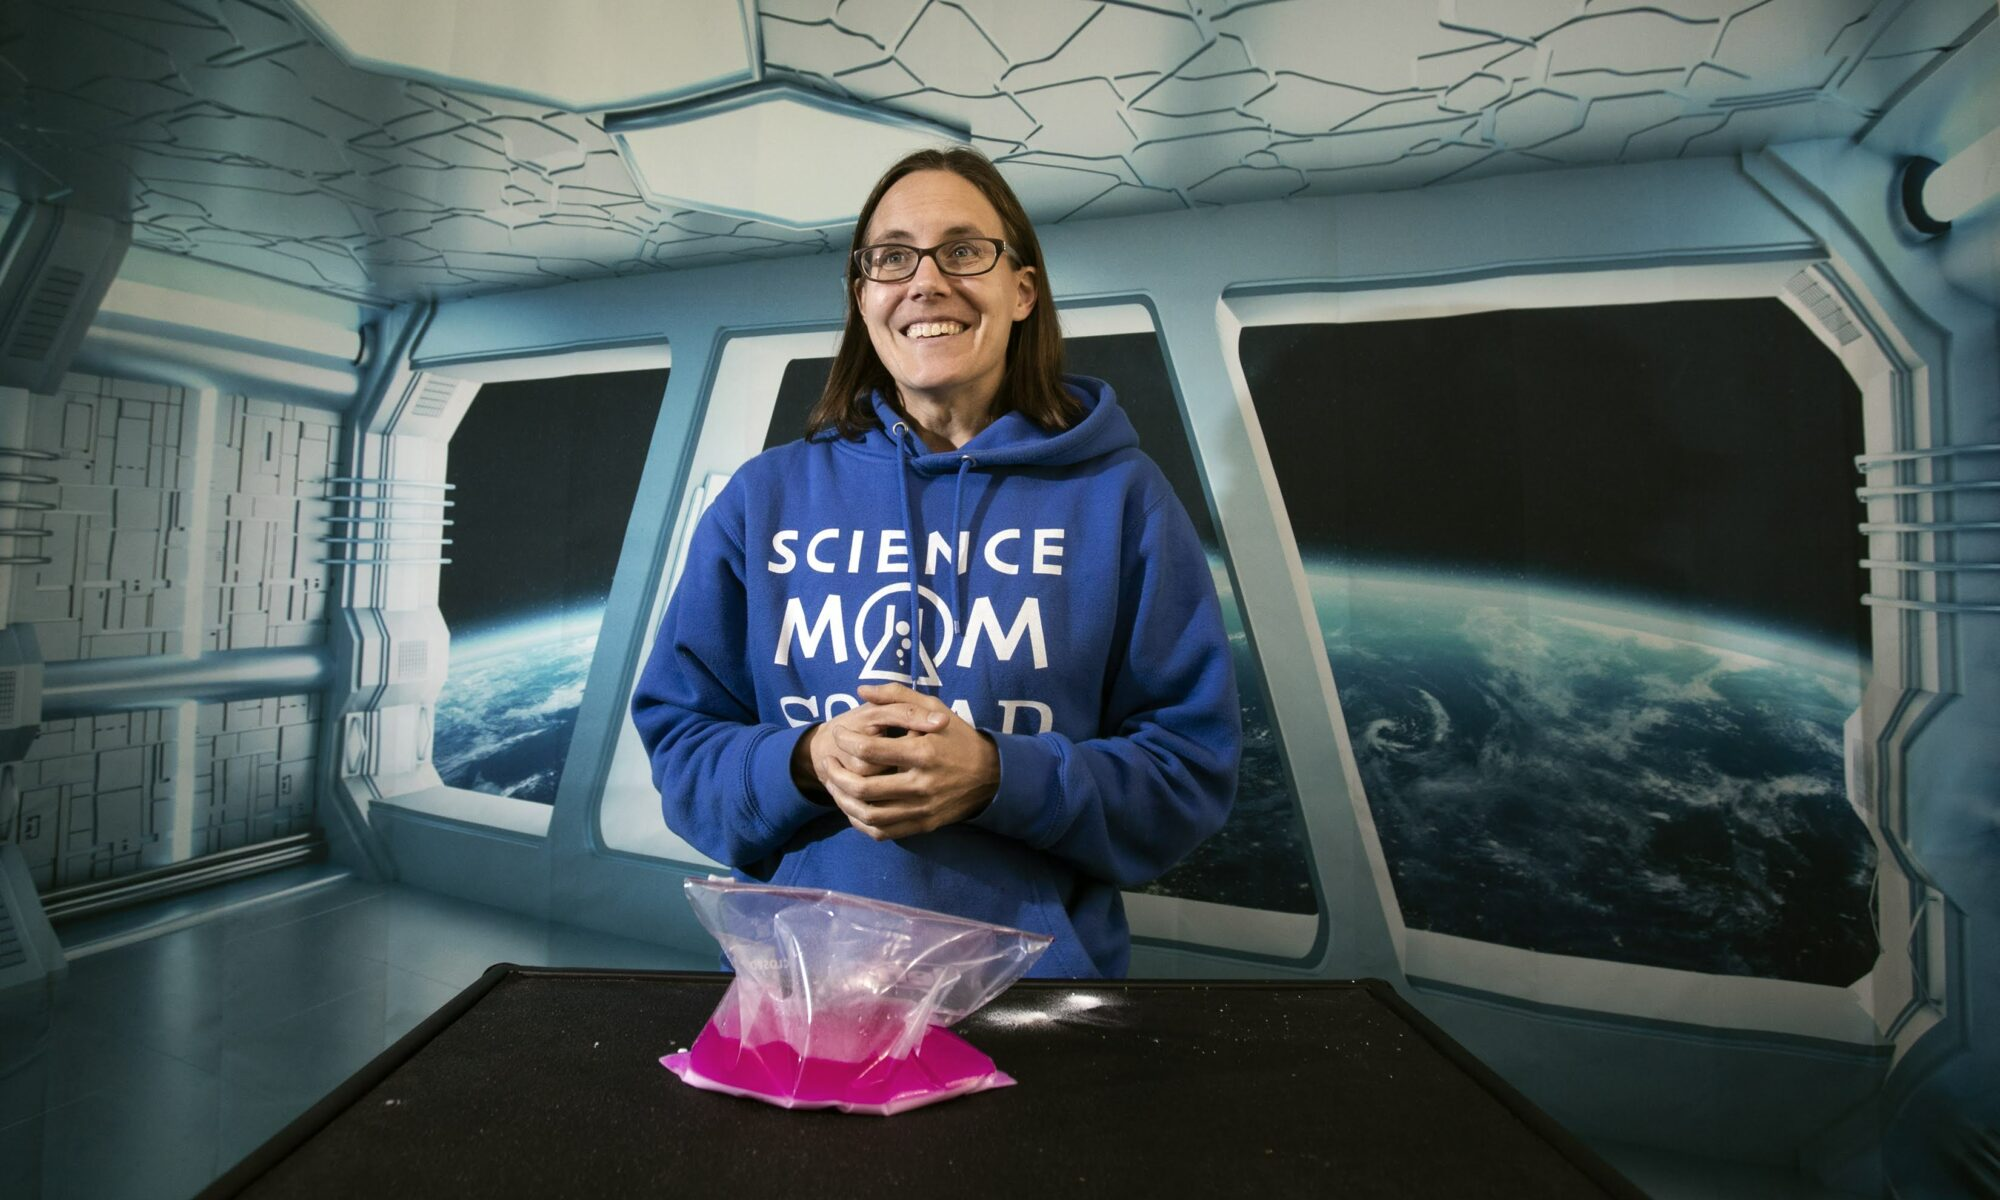 Jenny Ballif, in a blue science mom squad sweatshirt, standing in a space themed room